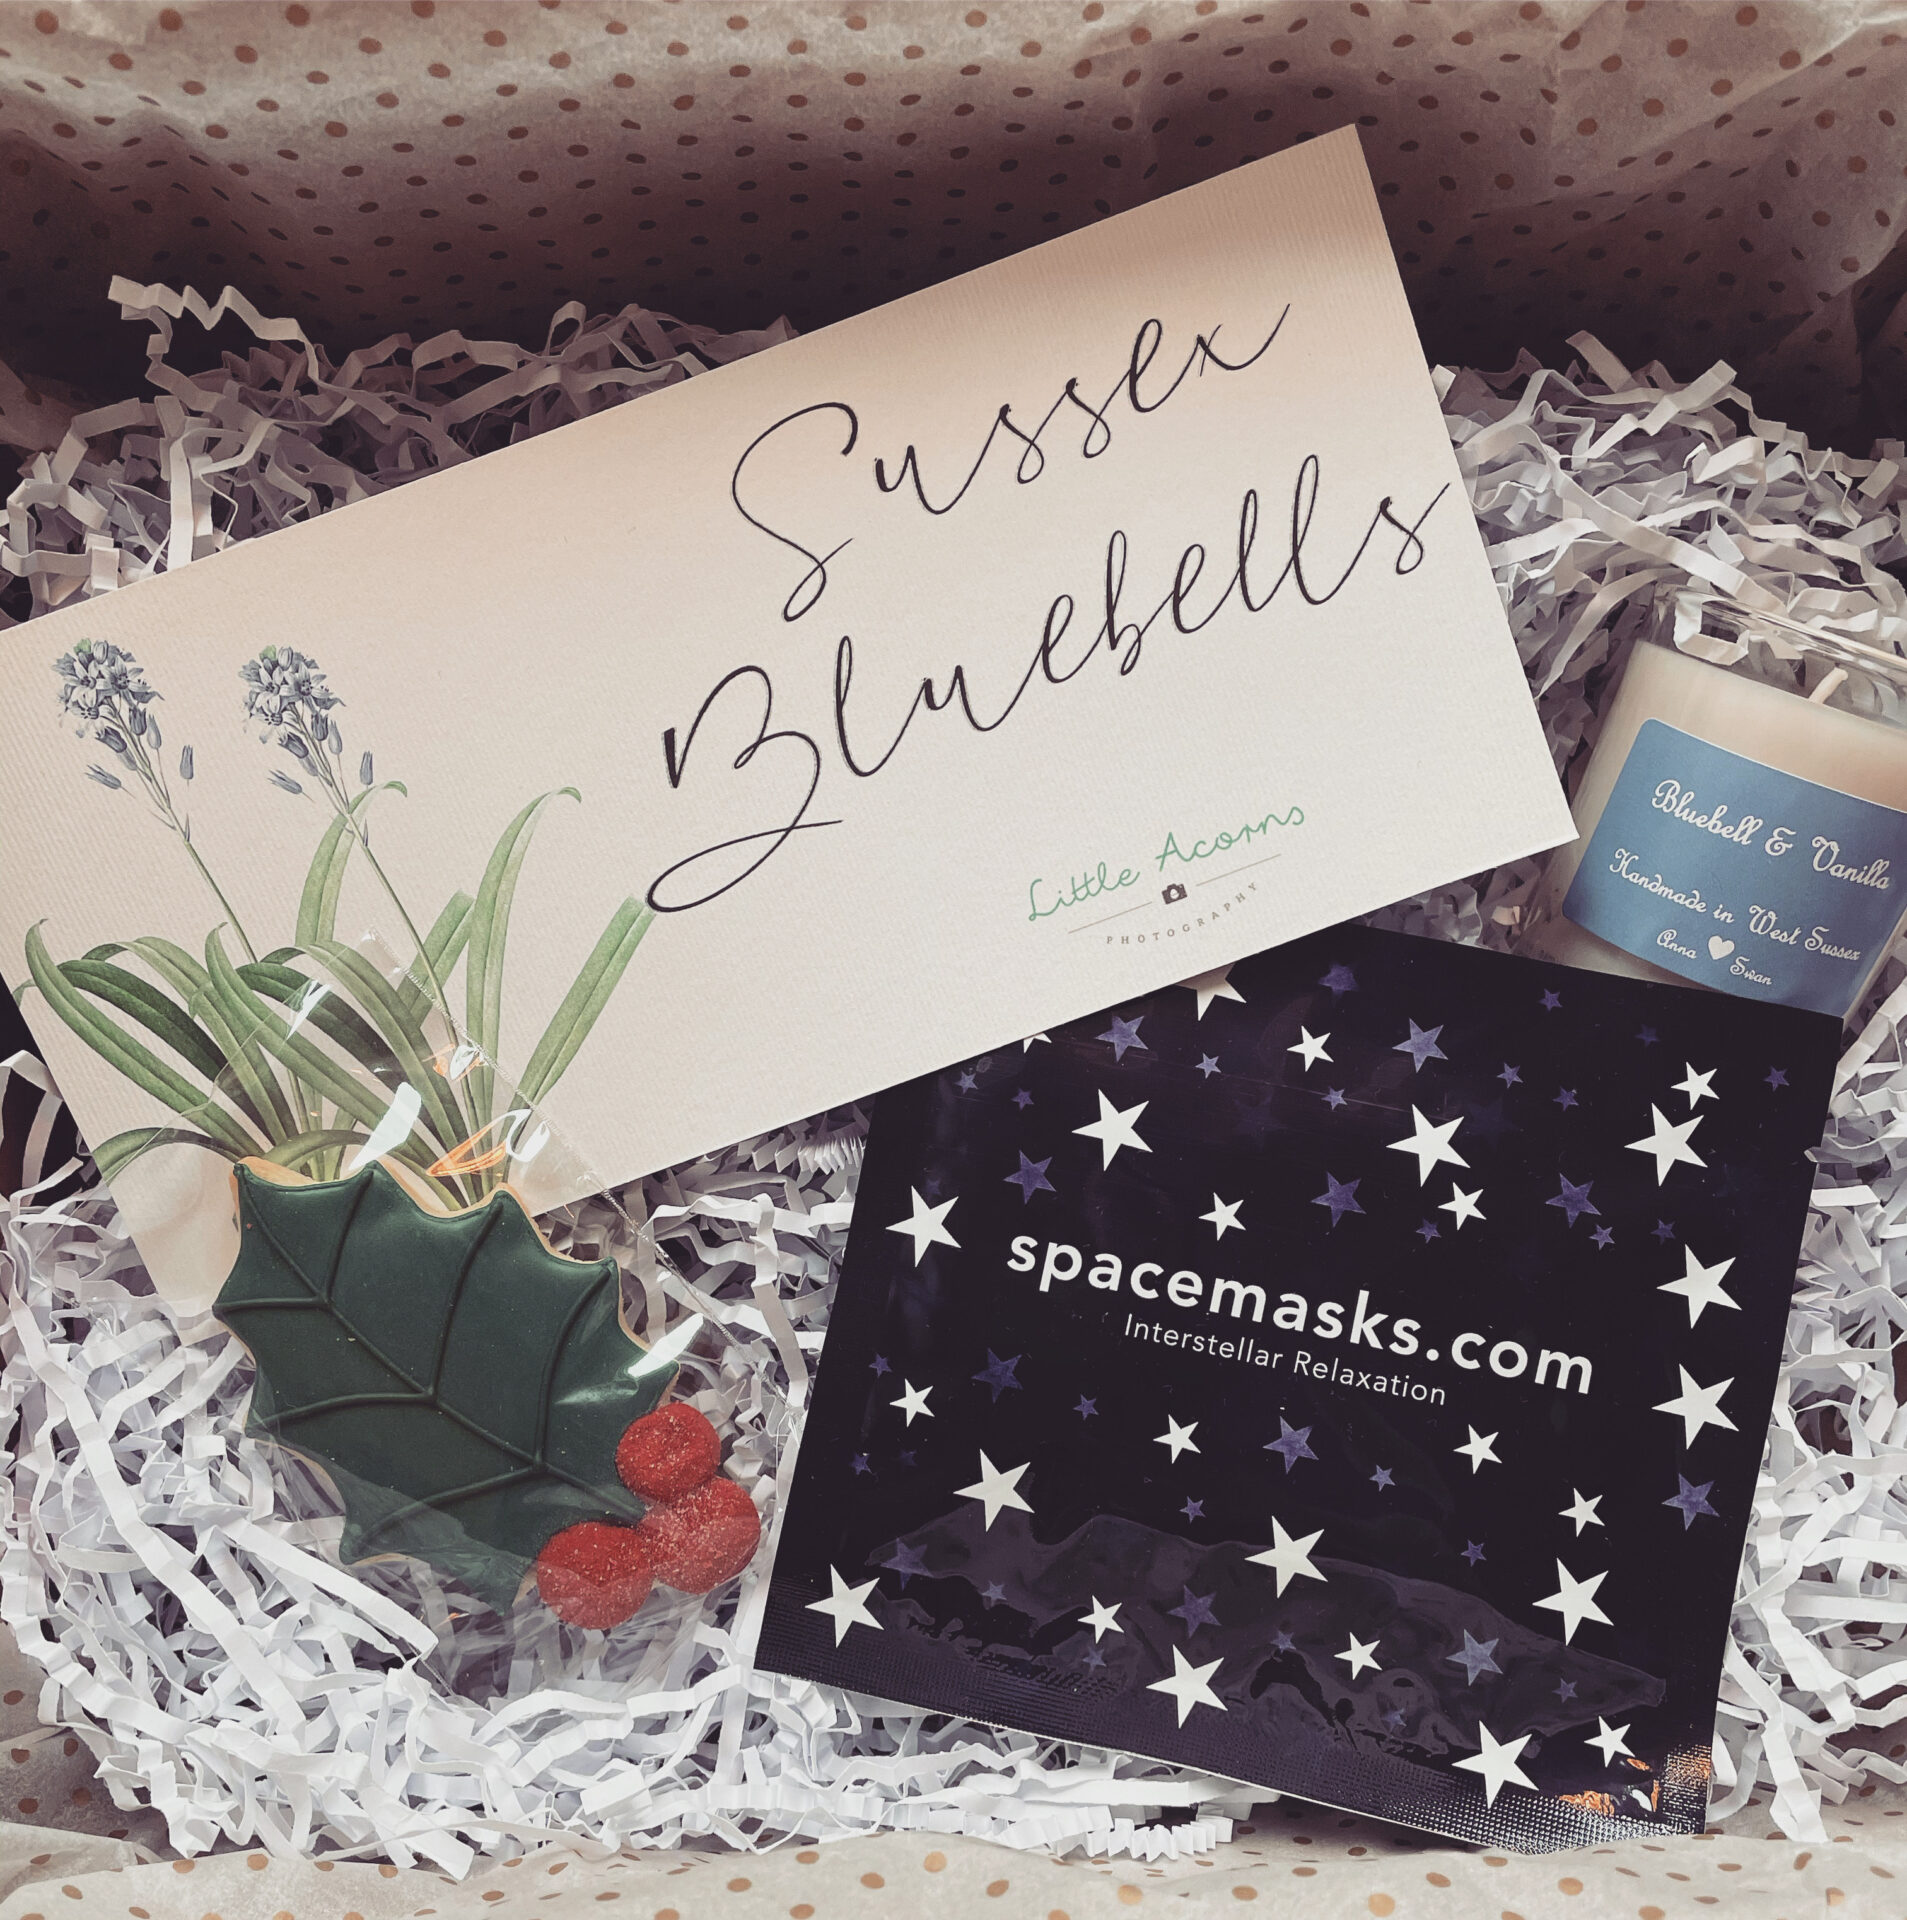 Sussex Bluebells Gift Box